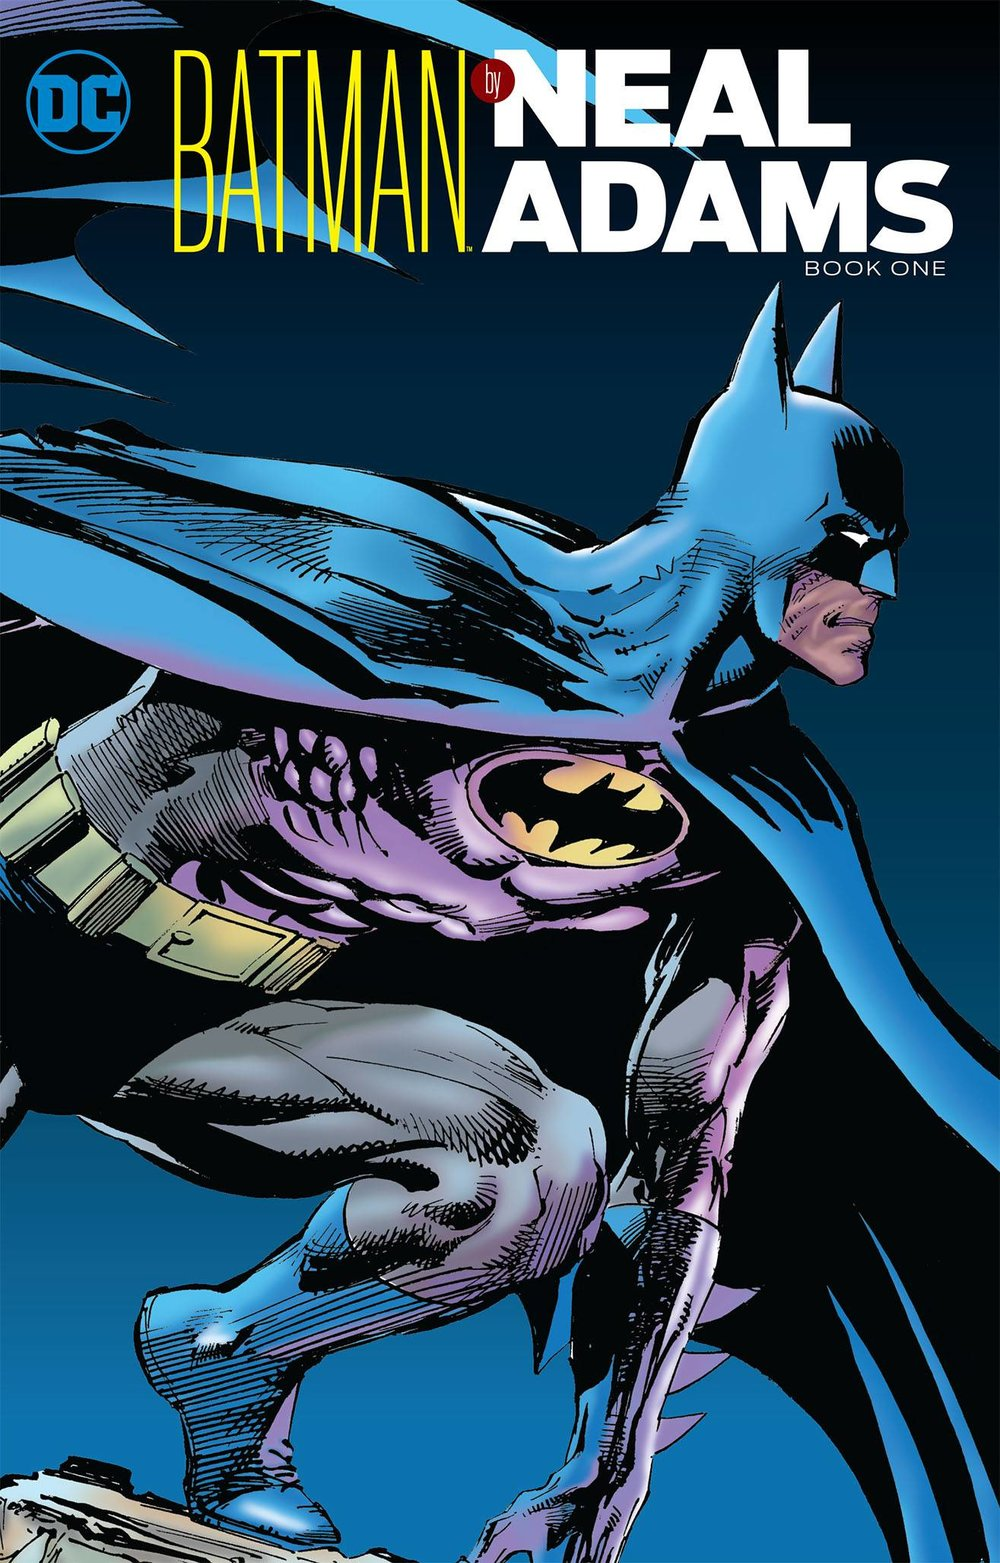 BATMAN BY NEAL ADAMS TP 1.jpg